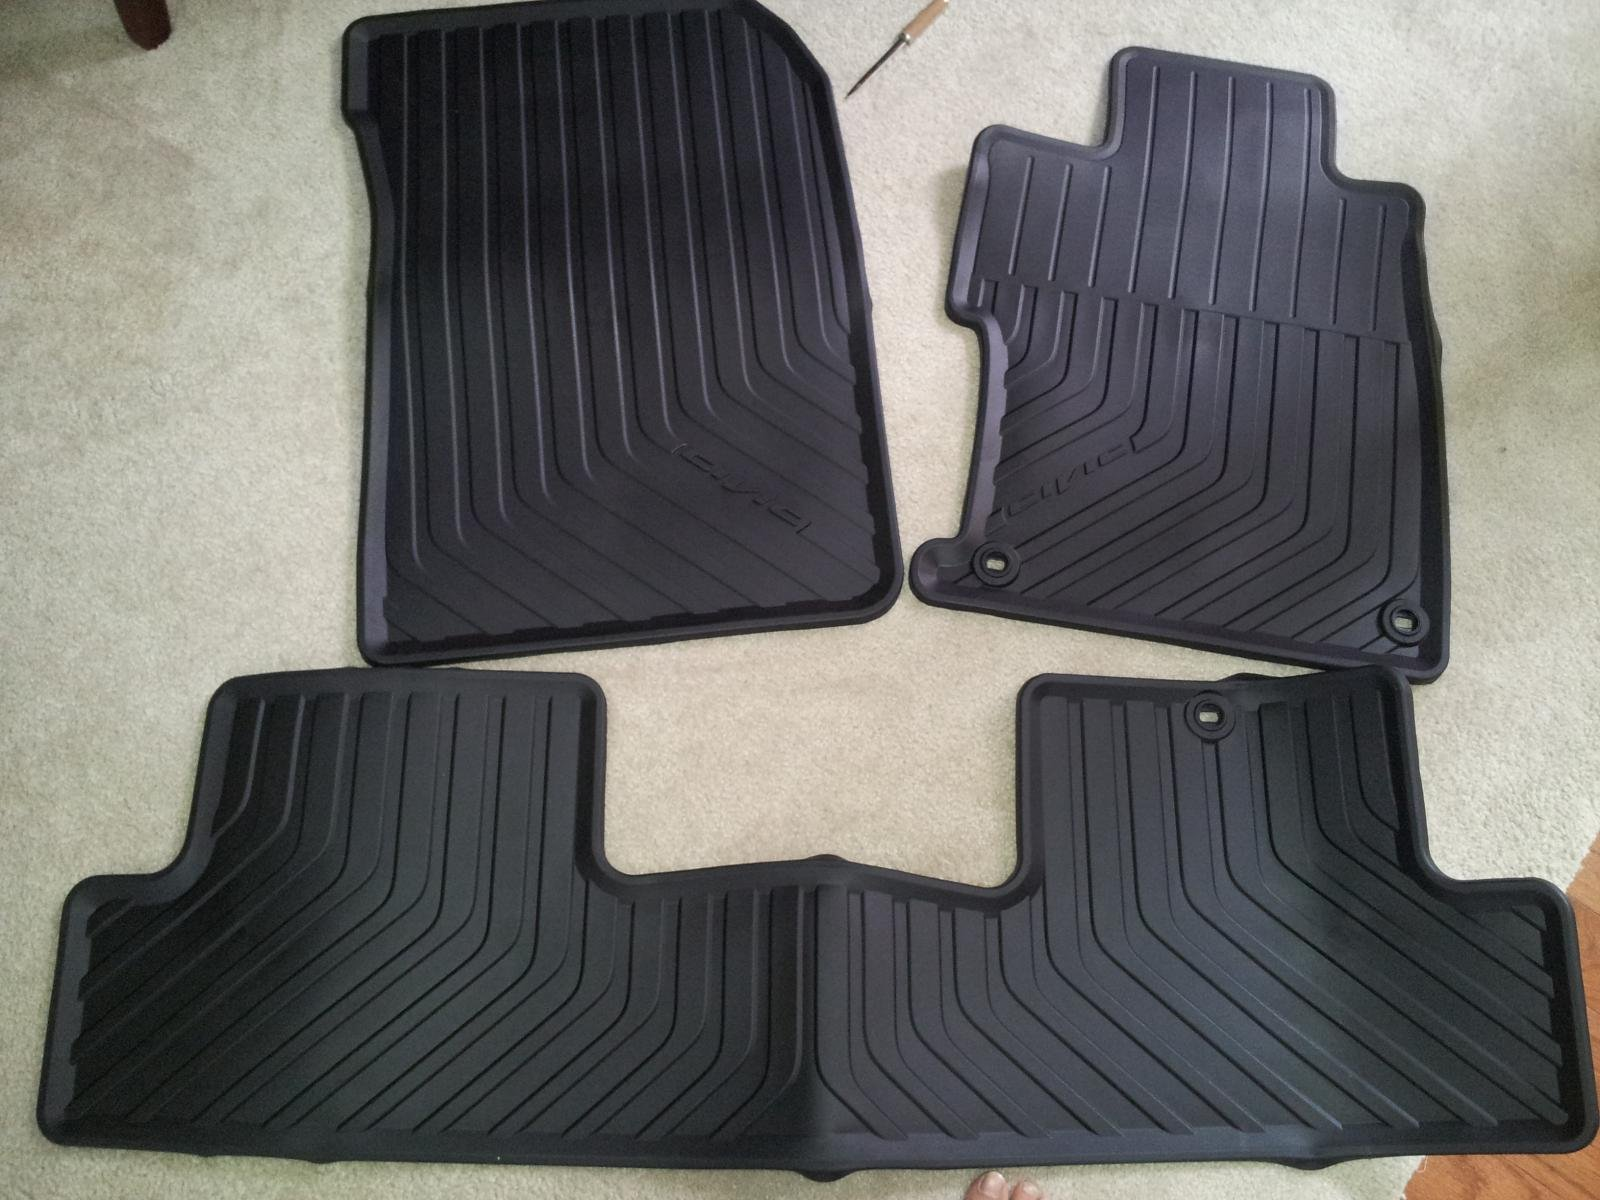 Honda Civic Si. Weathertech Or OEM All Weather Floor Mats?